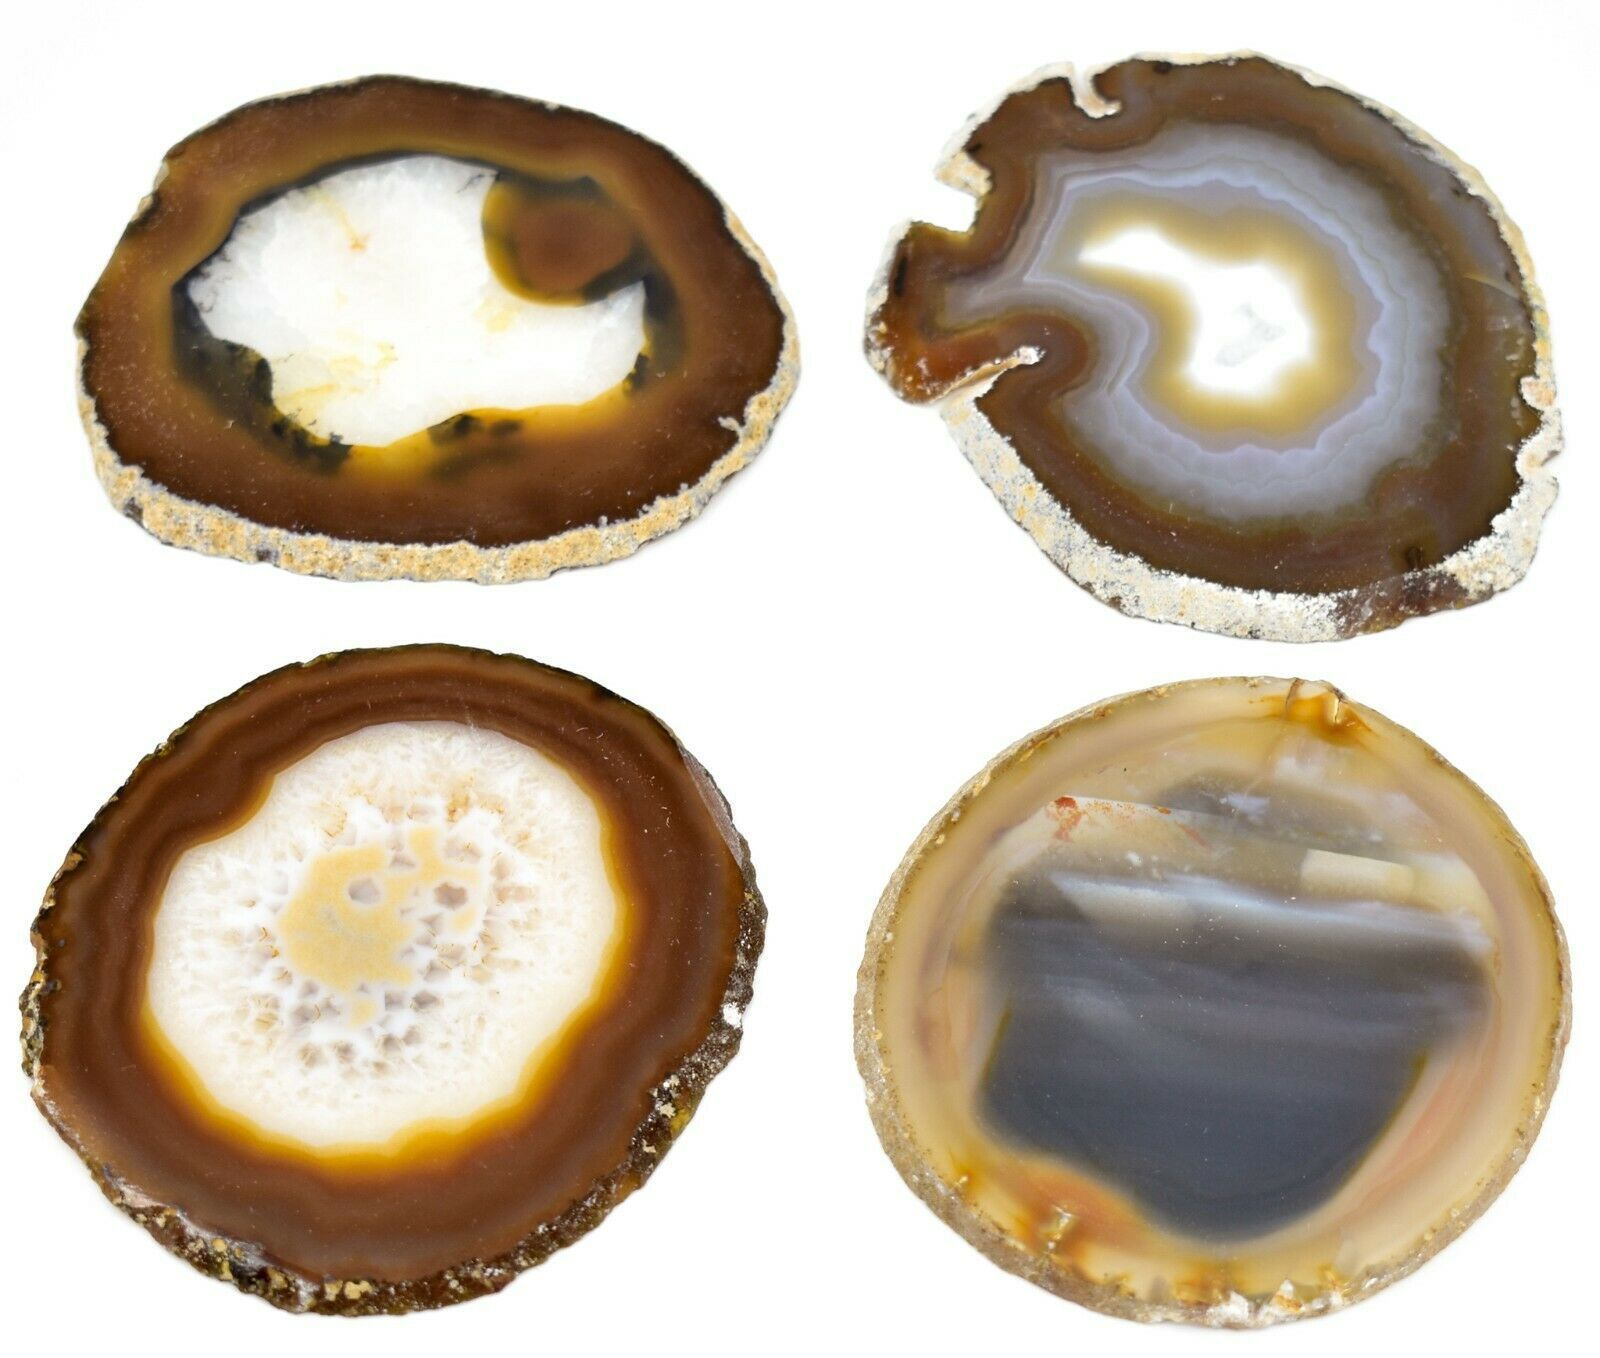 4pc. Polished Agate Quartz Crystal Sliced Slab Gemstone Coaster Set